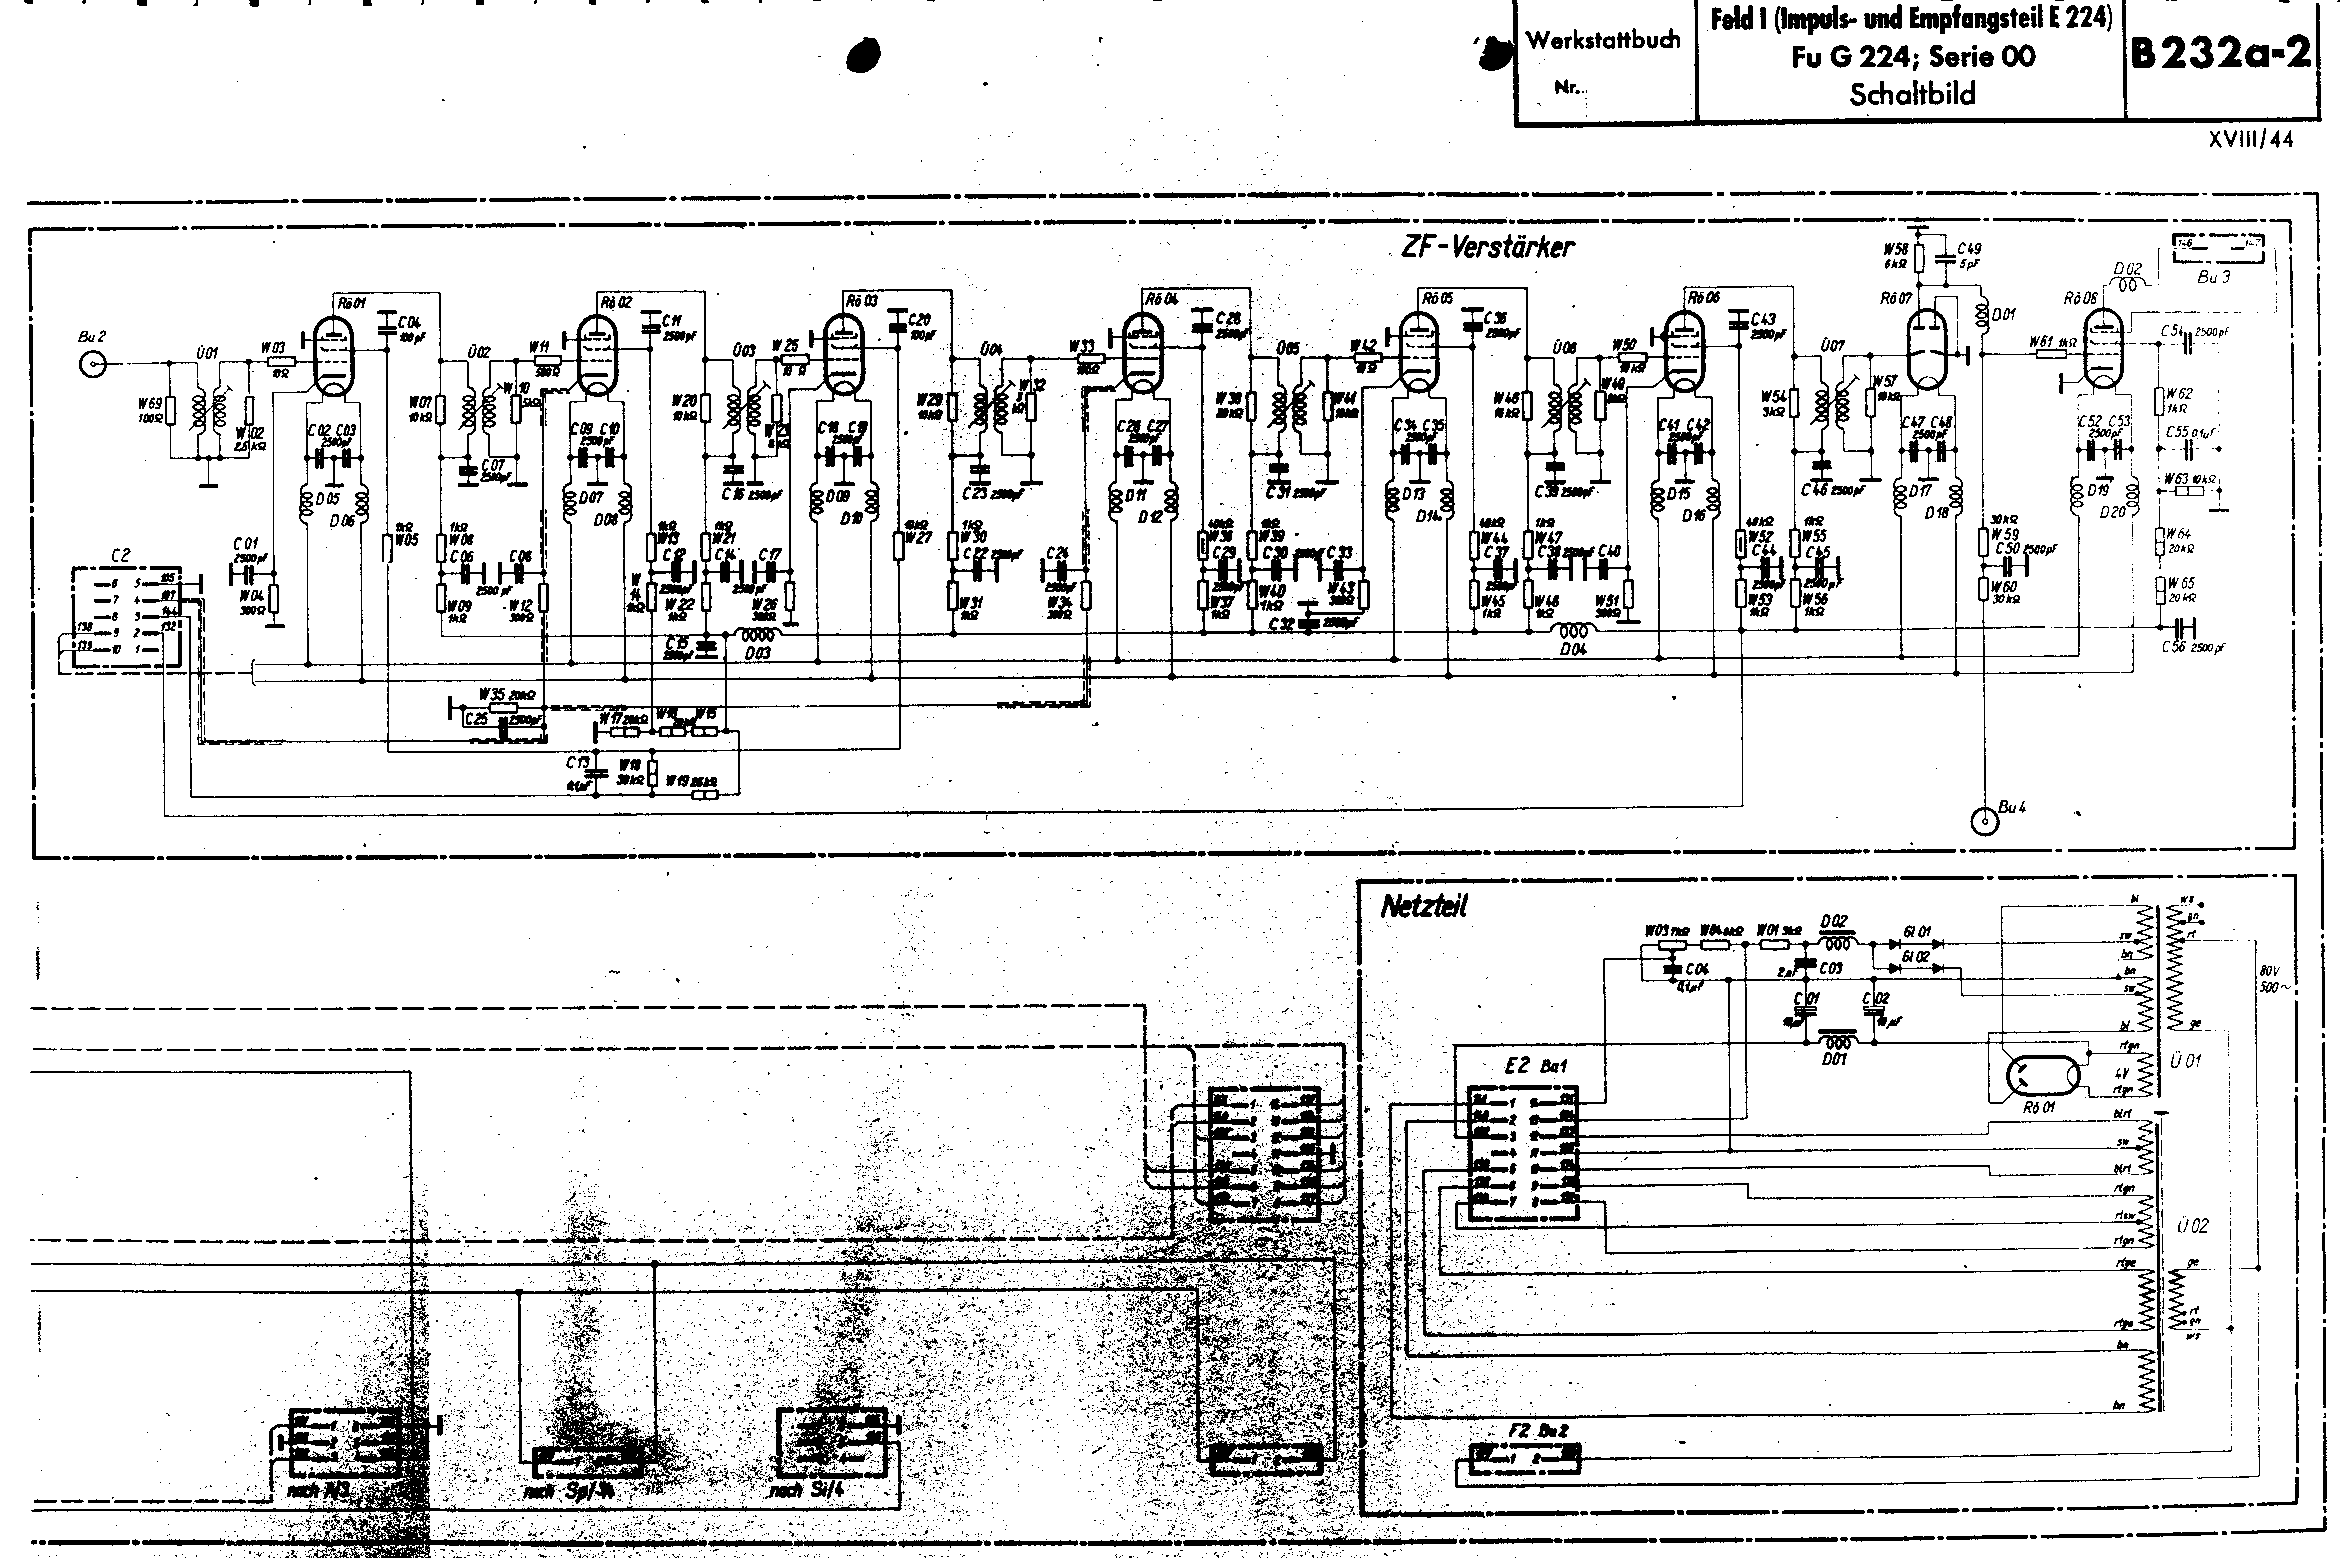 Berlin Radar Survey Case 224 Wiring Diagram By Clicking On This Drawing You Can Open In Pdf The Entire Of Full Feld I Schematic Kindly Provided Mr Eibensteiner